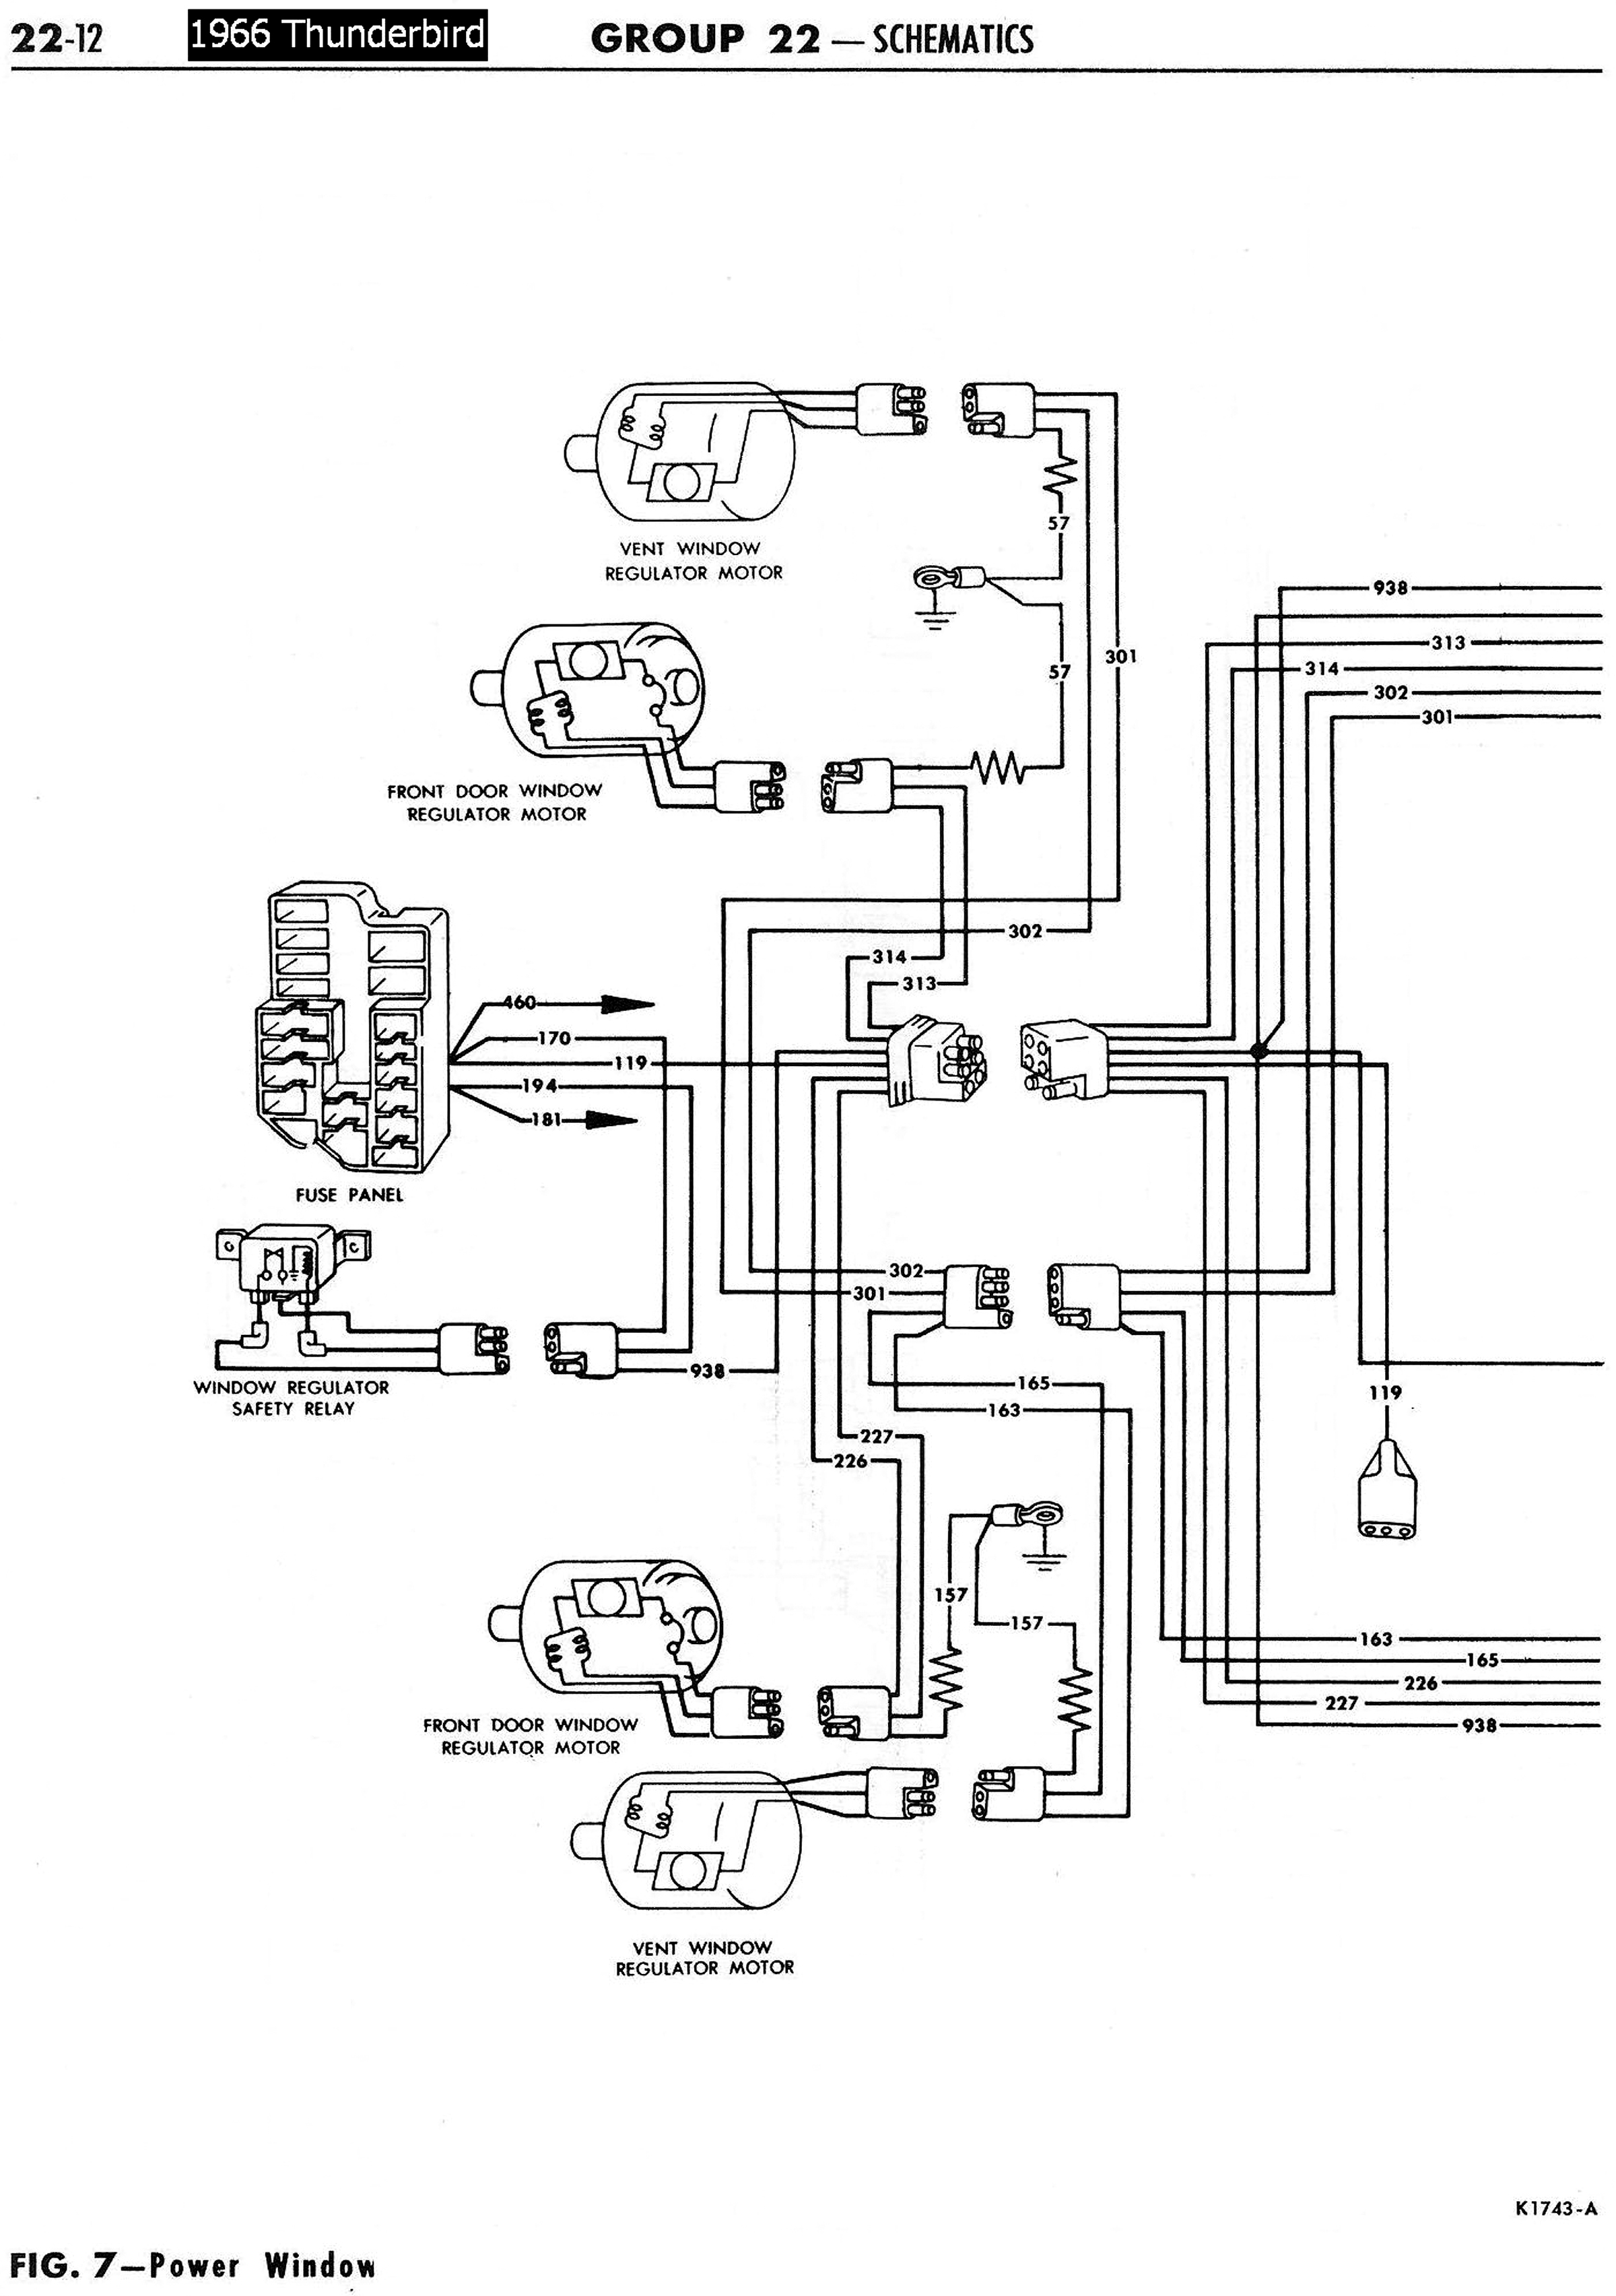 66TbirdPowerWindowsSchematicLeft 1958 68 ford electrical schematics 1955 thunderbird wiring diagram at gsmx.co